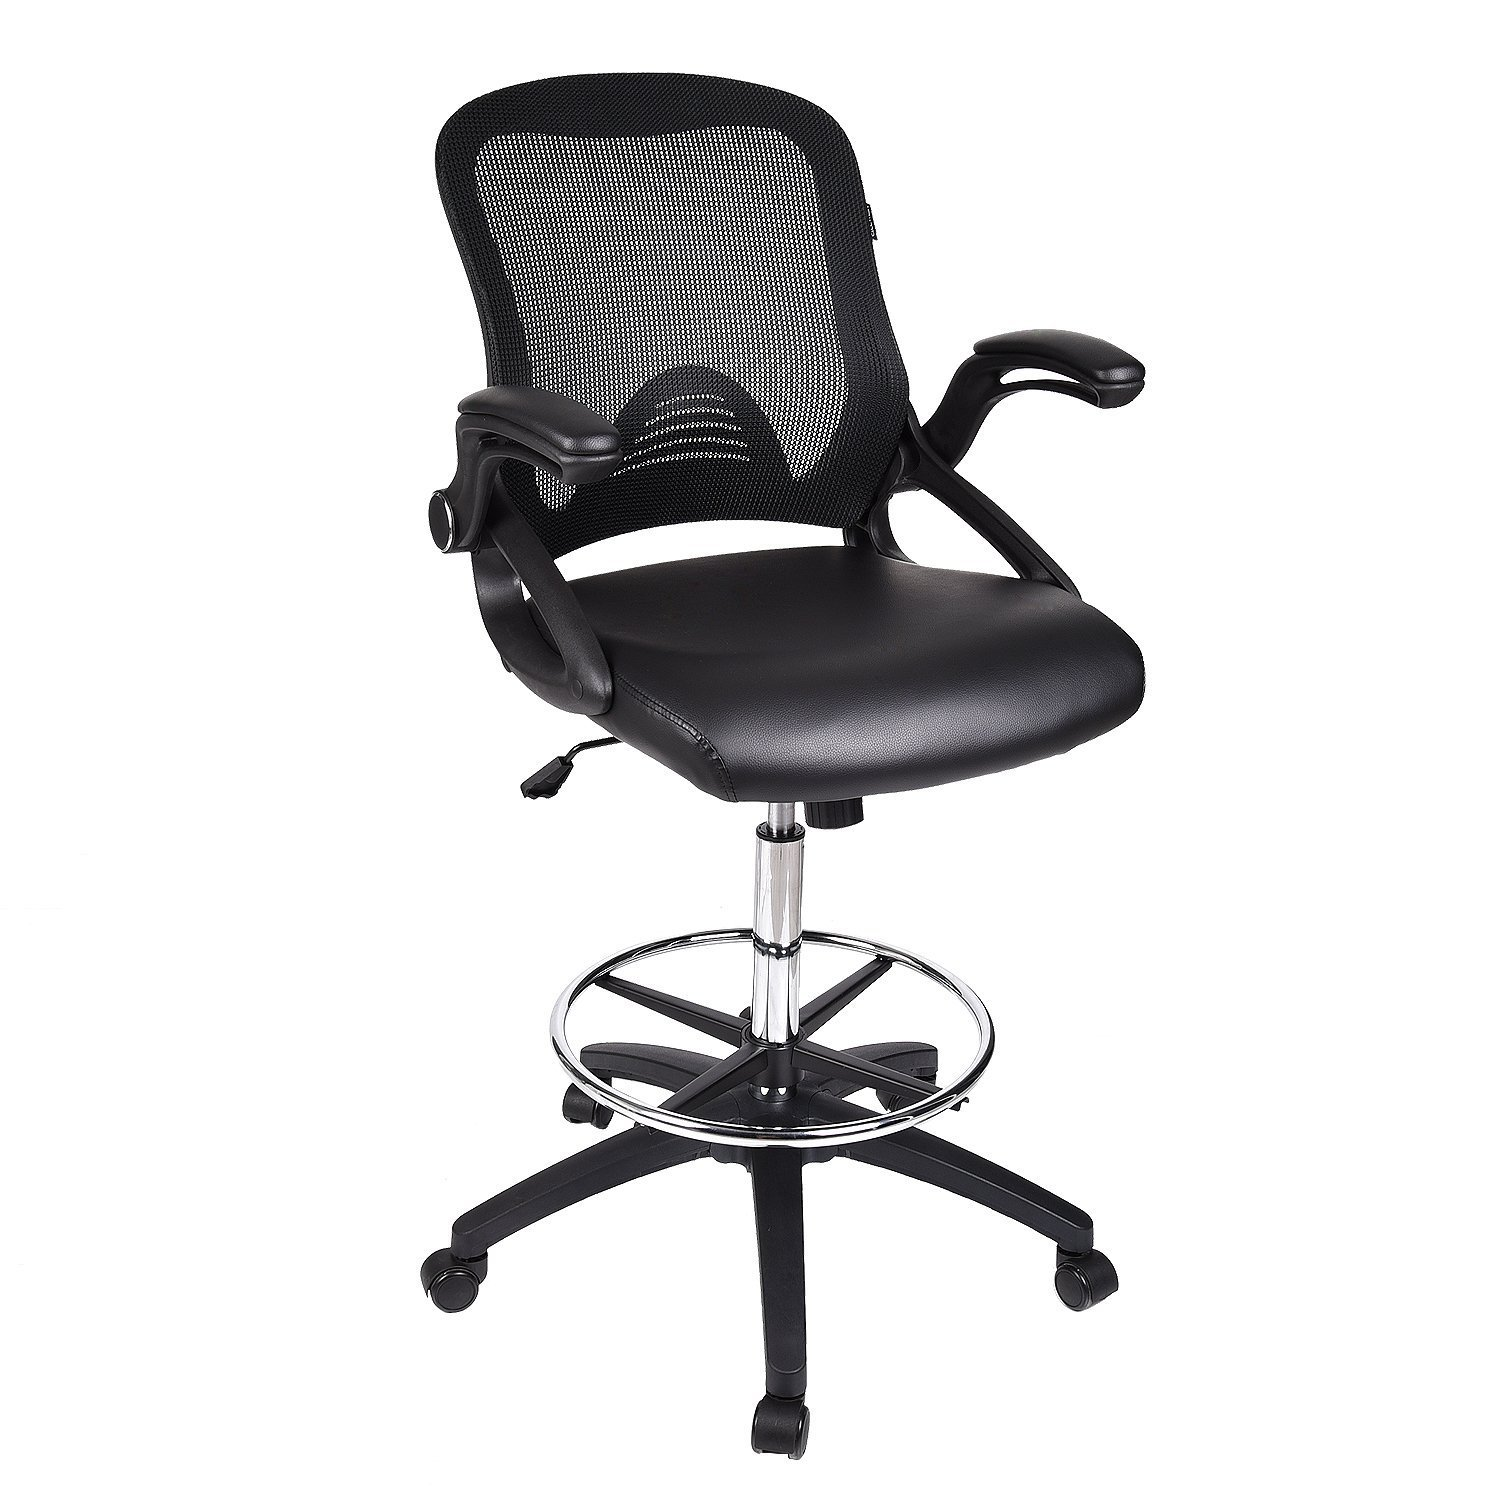 Drafting Stool Chair Adjustable Height With Flip Up Arms, Soft PU Leather  Seat And